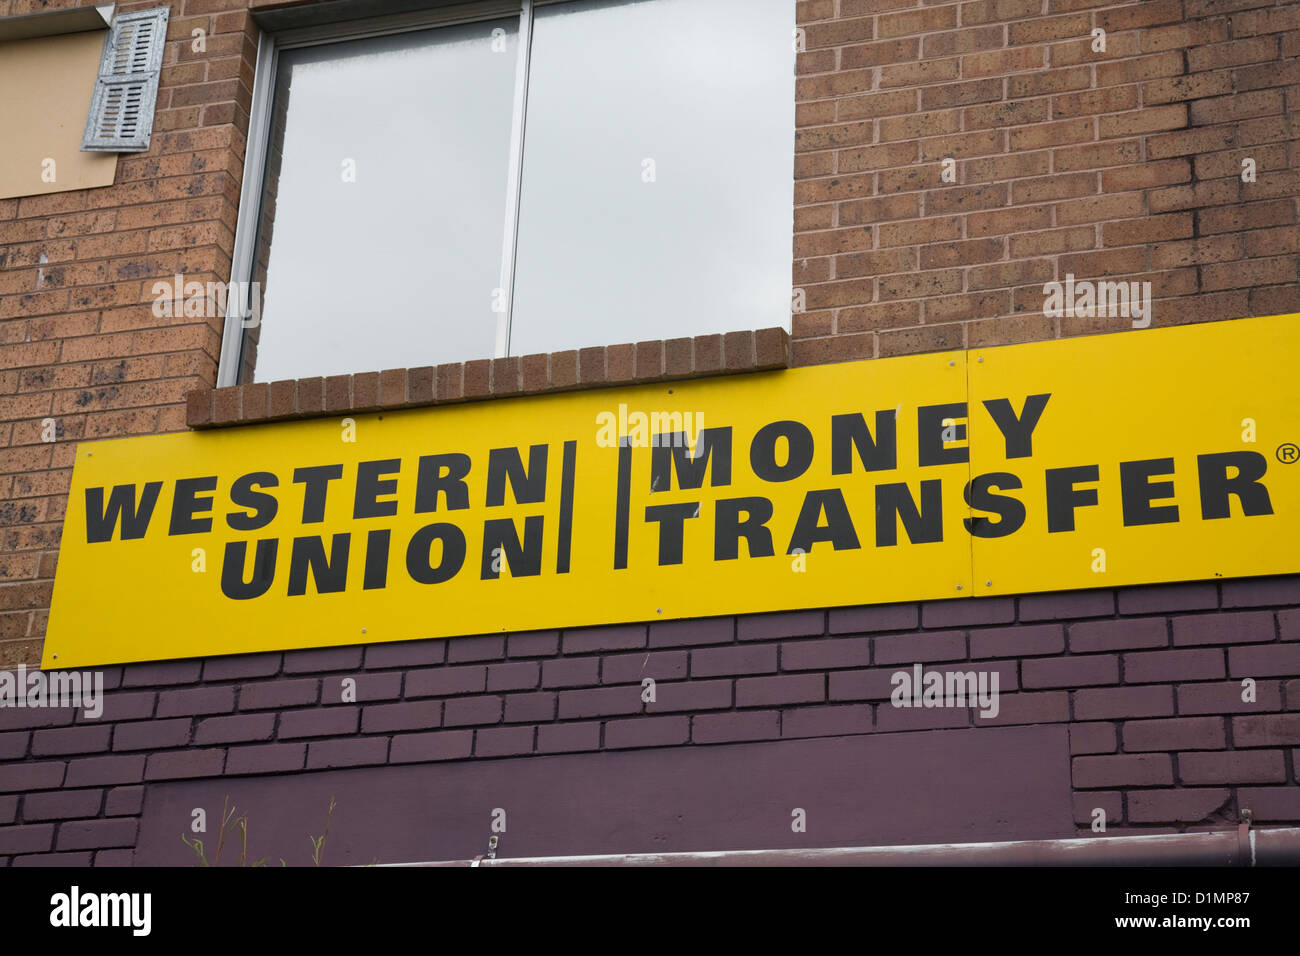 where is western union in sydney - photo#3